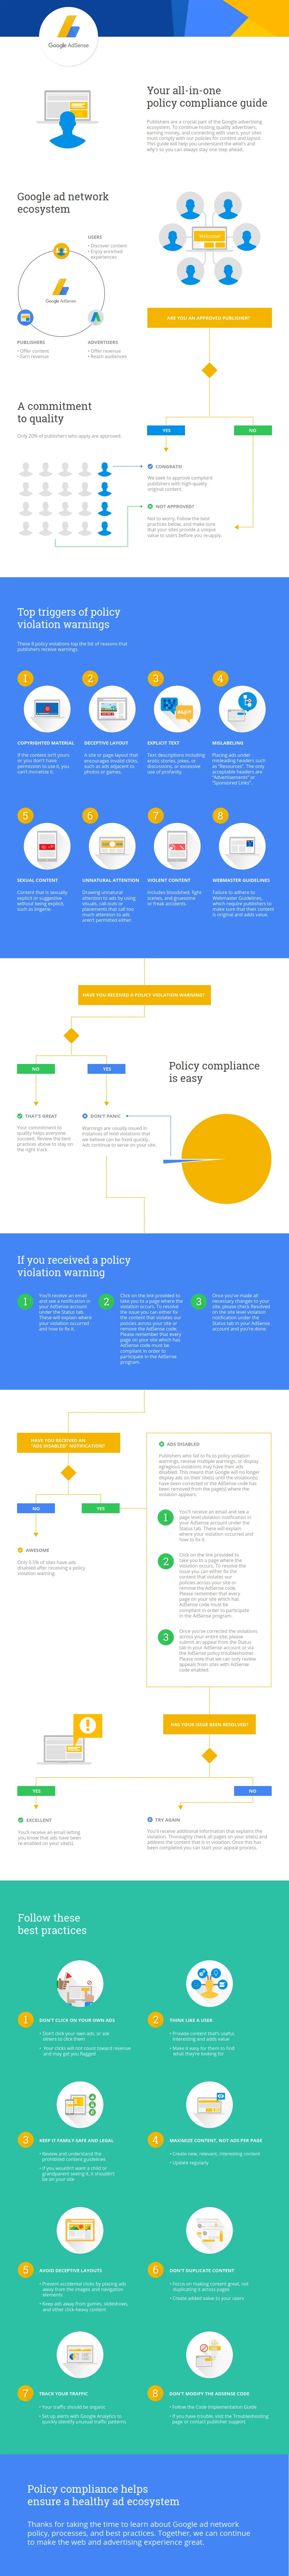 infographic: google adsense at a glance policy compliance